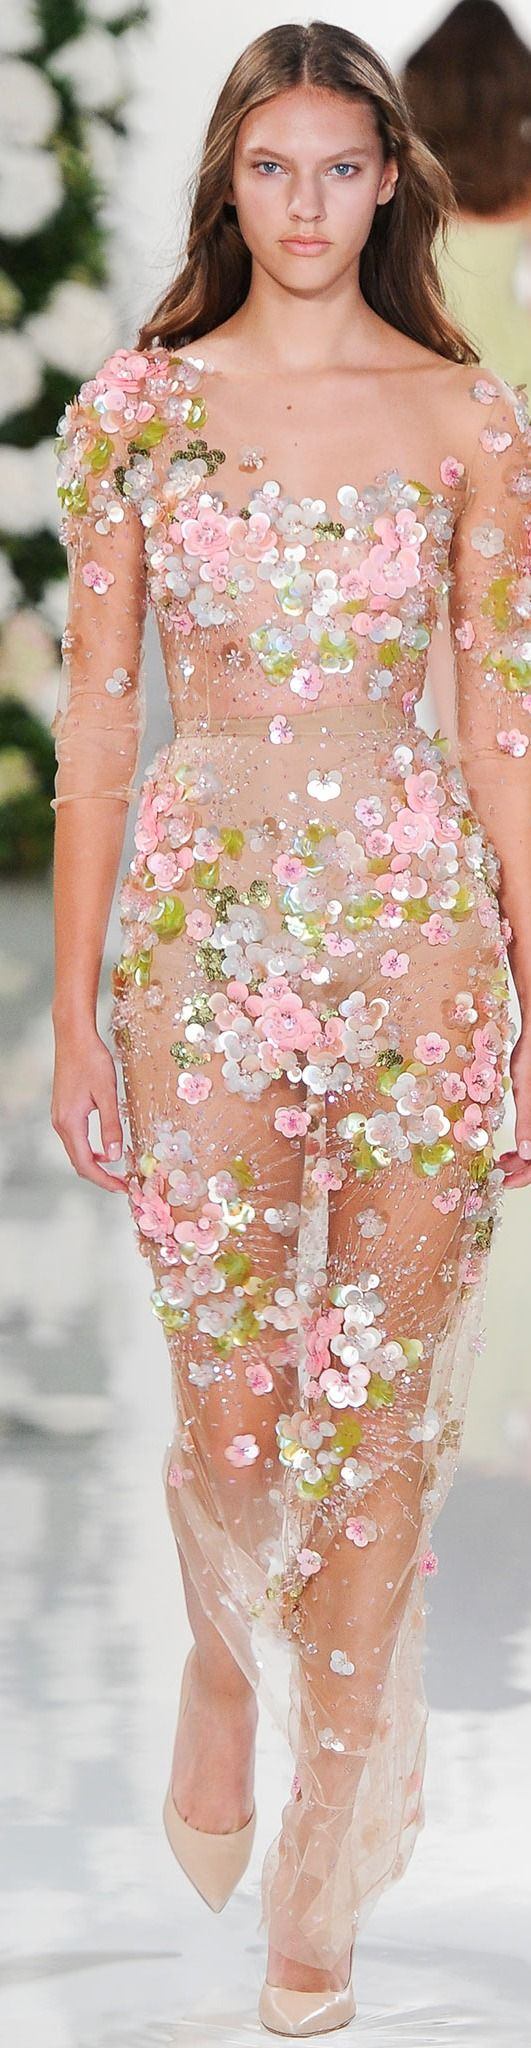 can I have some dress under the flowers?